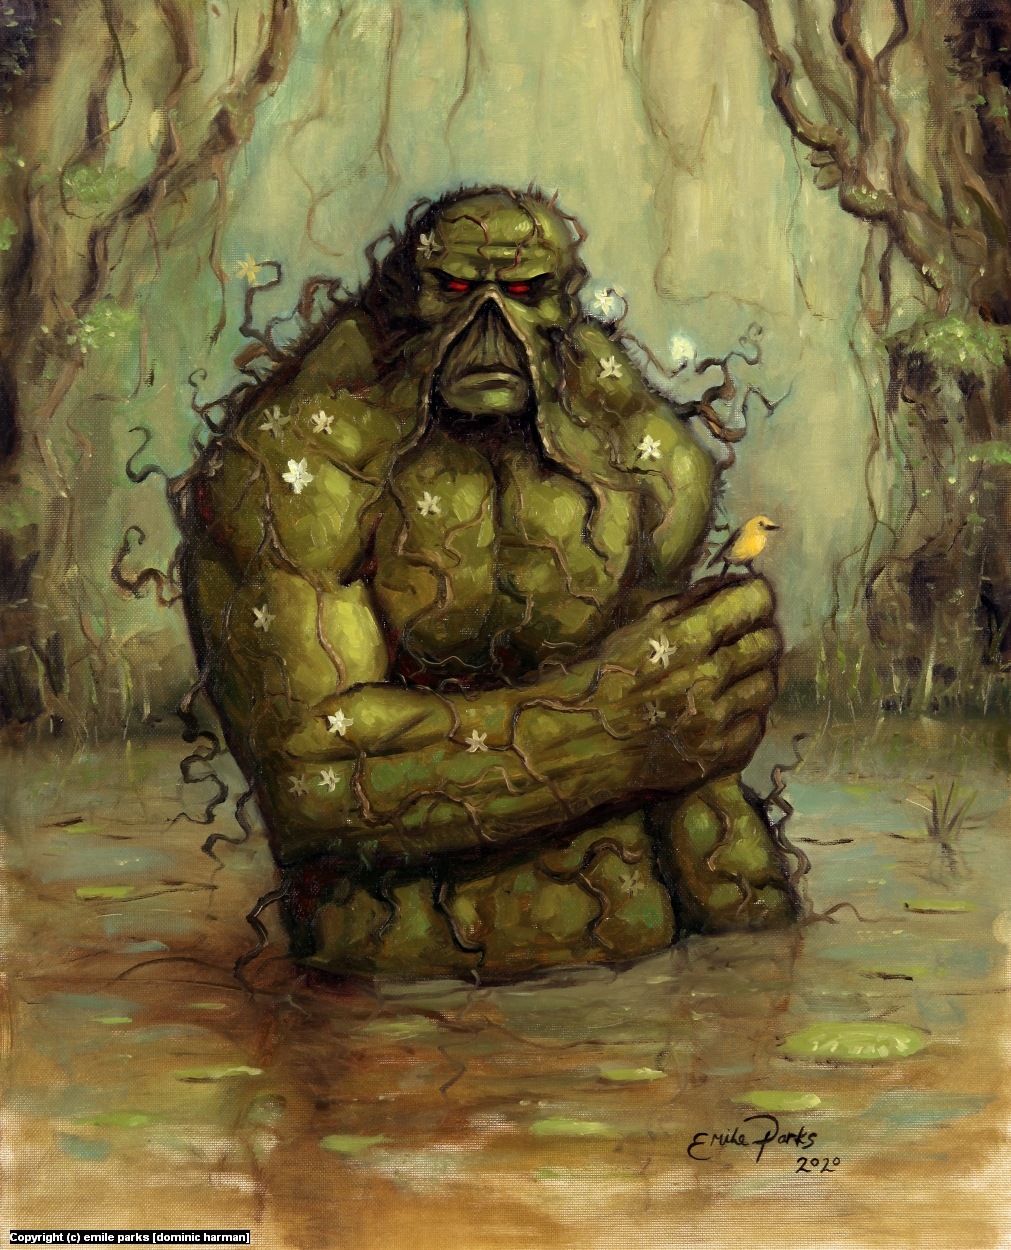 Swamp Thing Sketch Artwork by emile parks